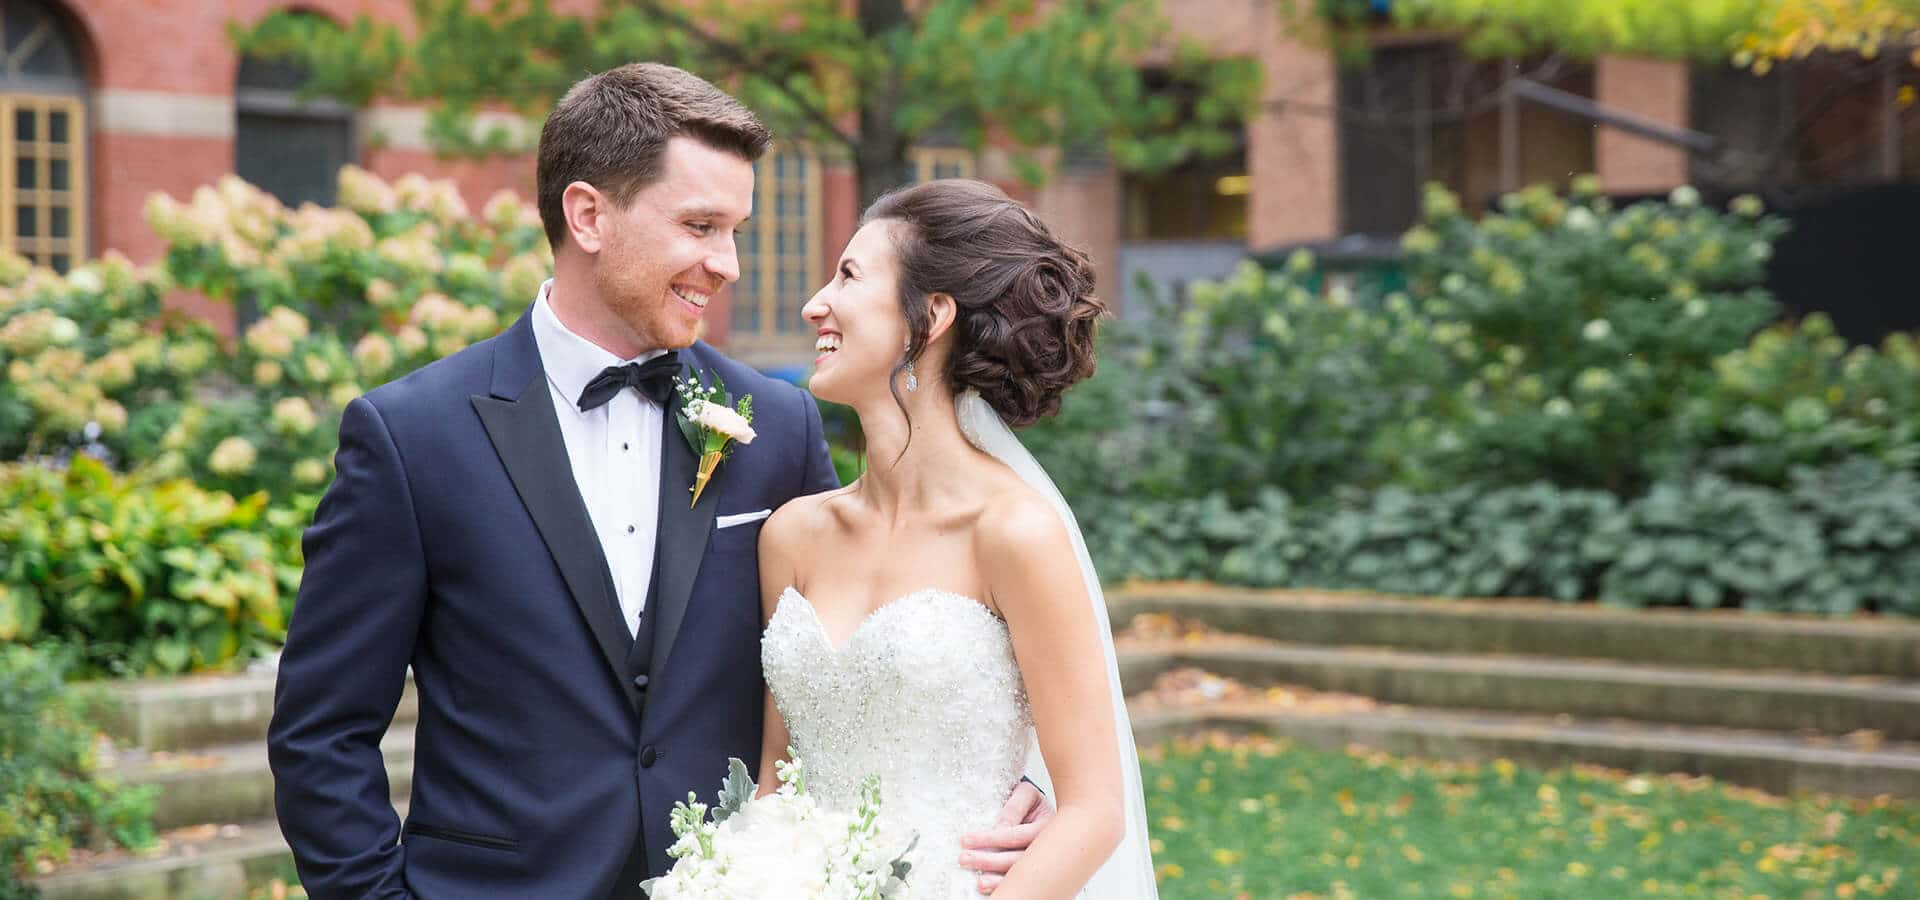 Hero image for Stephanie & Jordan's Intimate Wedding at The Rosewater Room